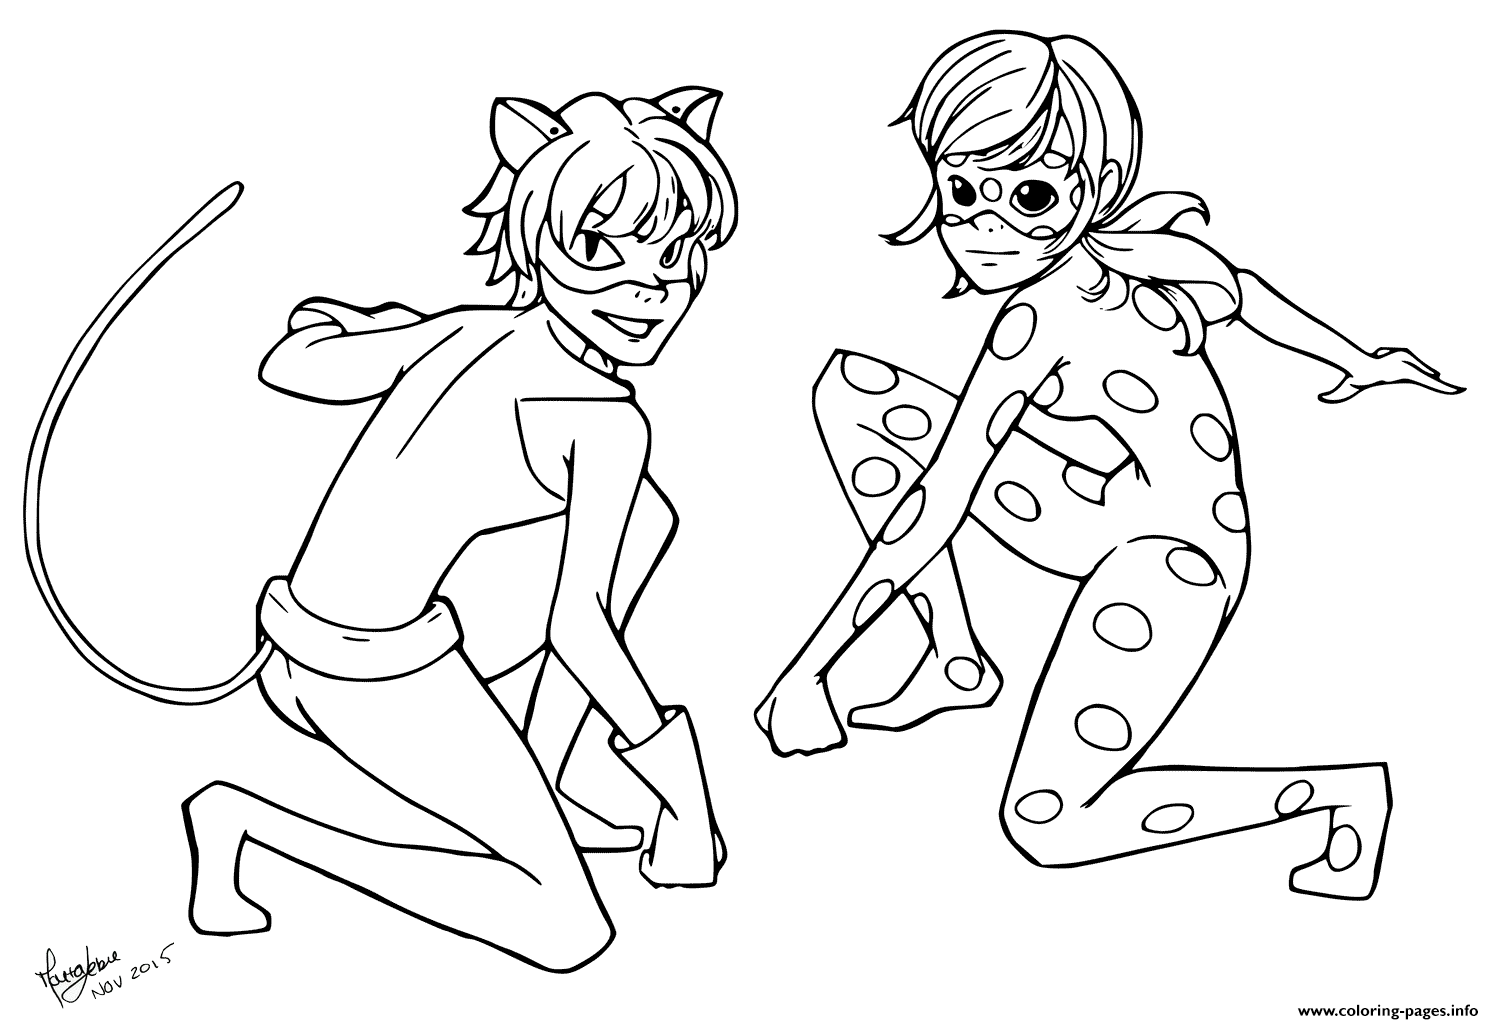 Print Miraculous Tales Of Ladybug Cat Noir Kids Coloring Pages Ladybug Coloring Page Cartoon Coloring Pages Coloring Pages